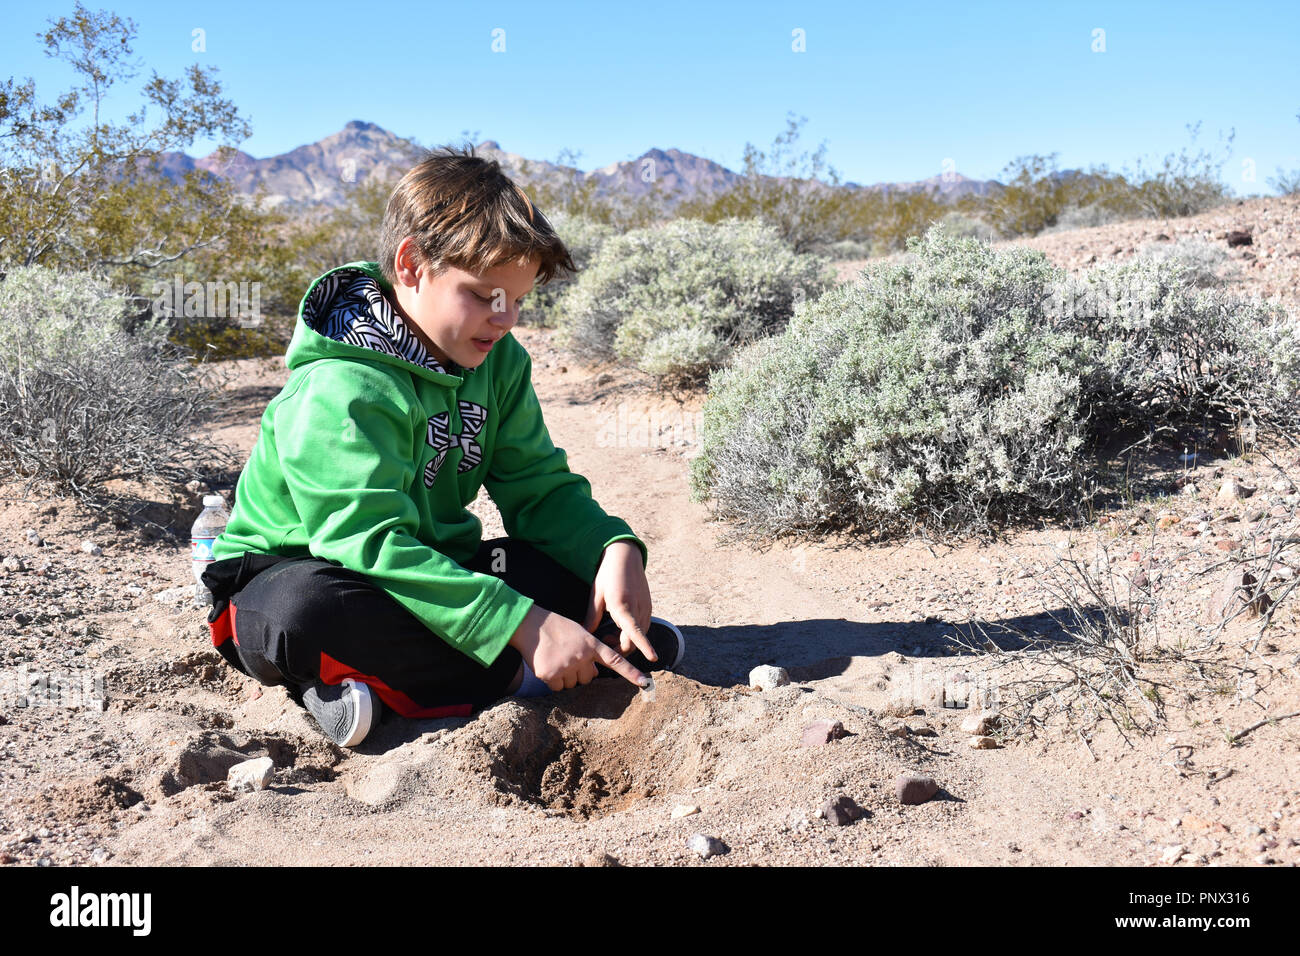 school age boy sitting on the ground building with dirt in the nevada desert - Stock Image